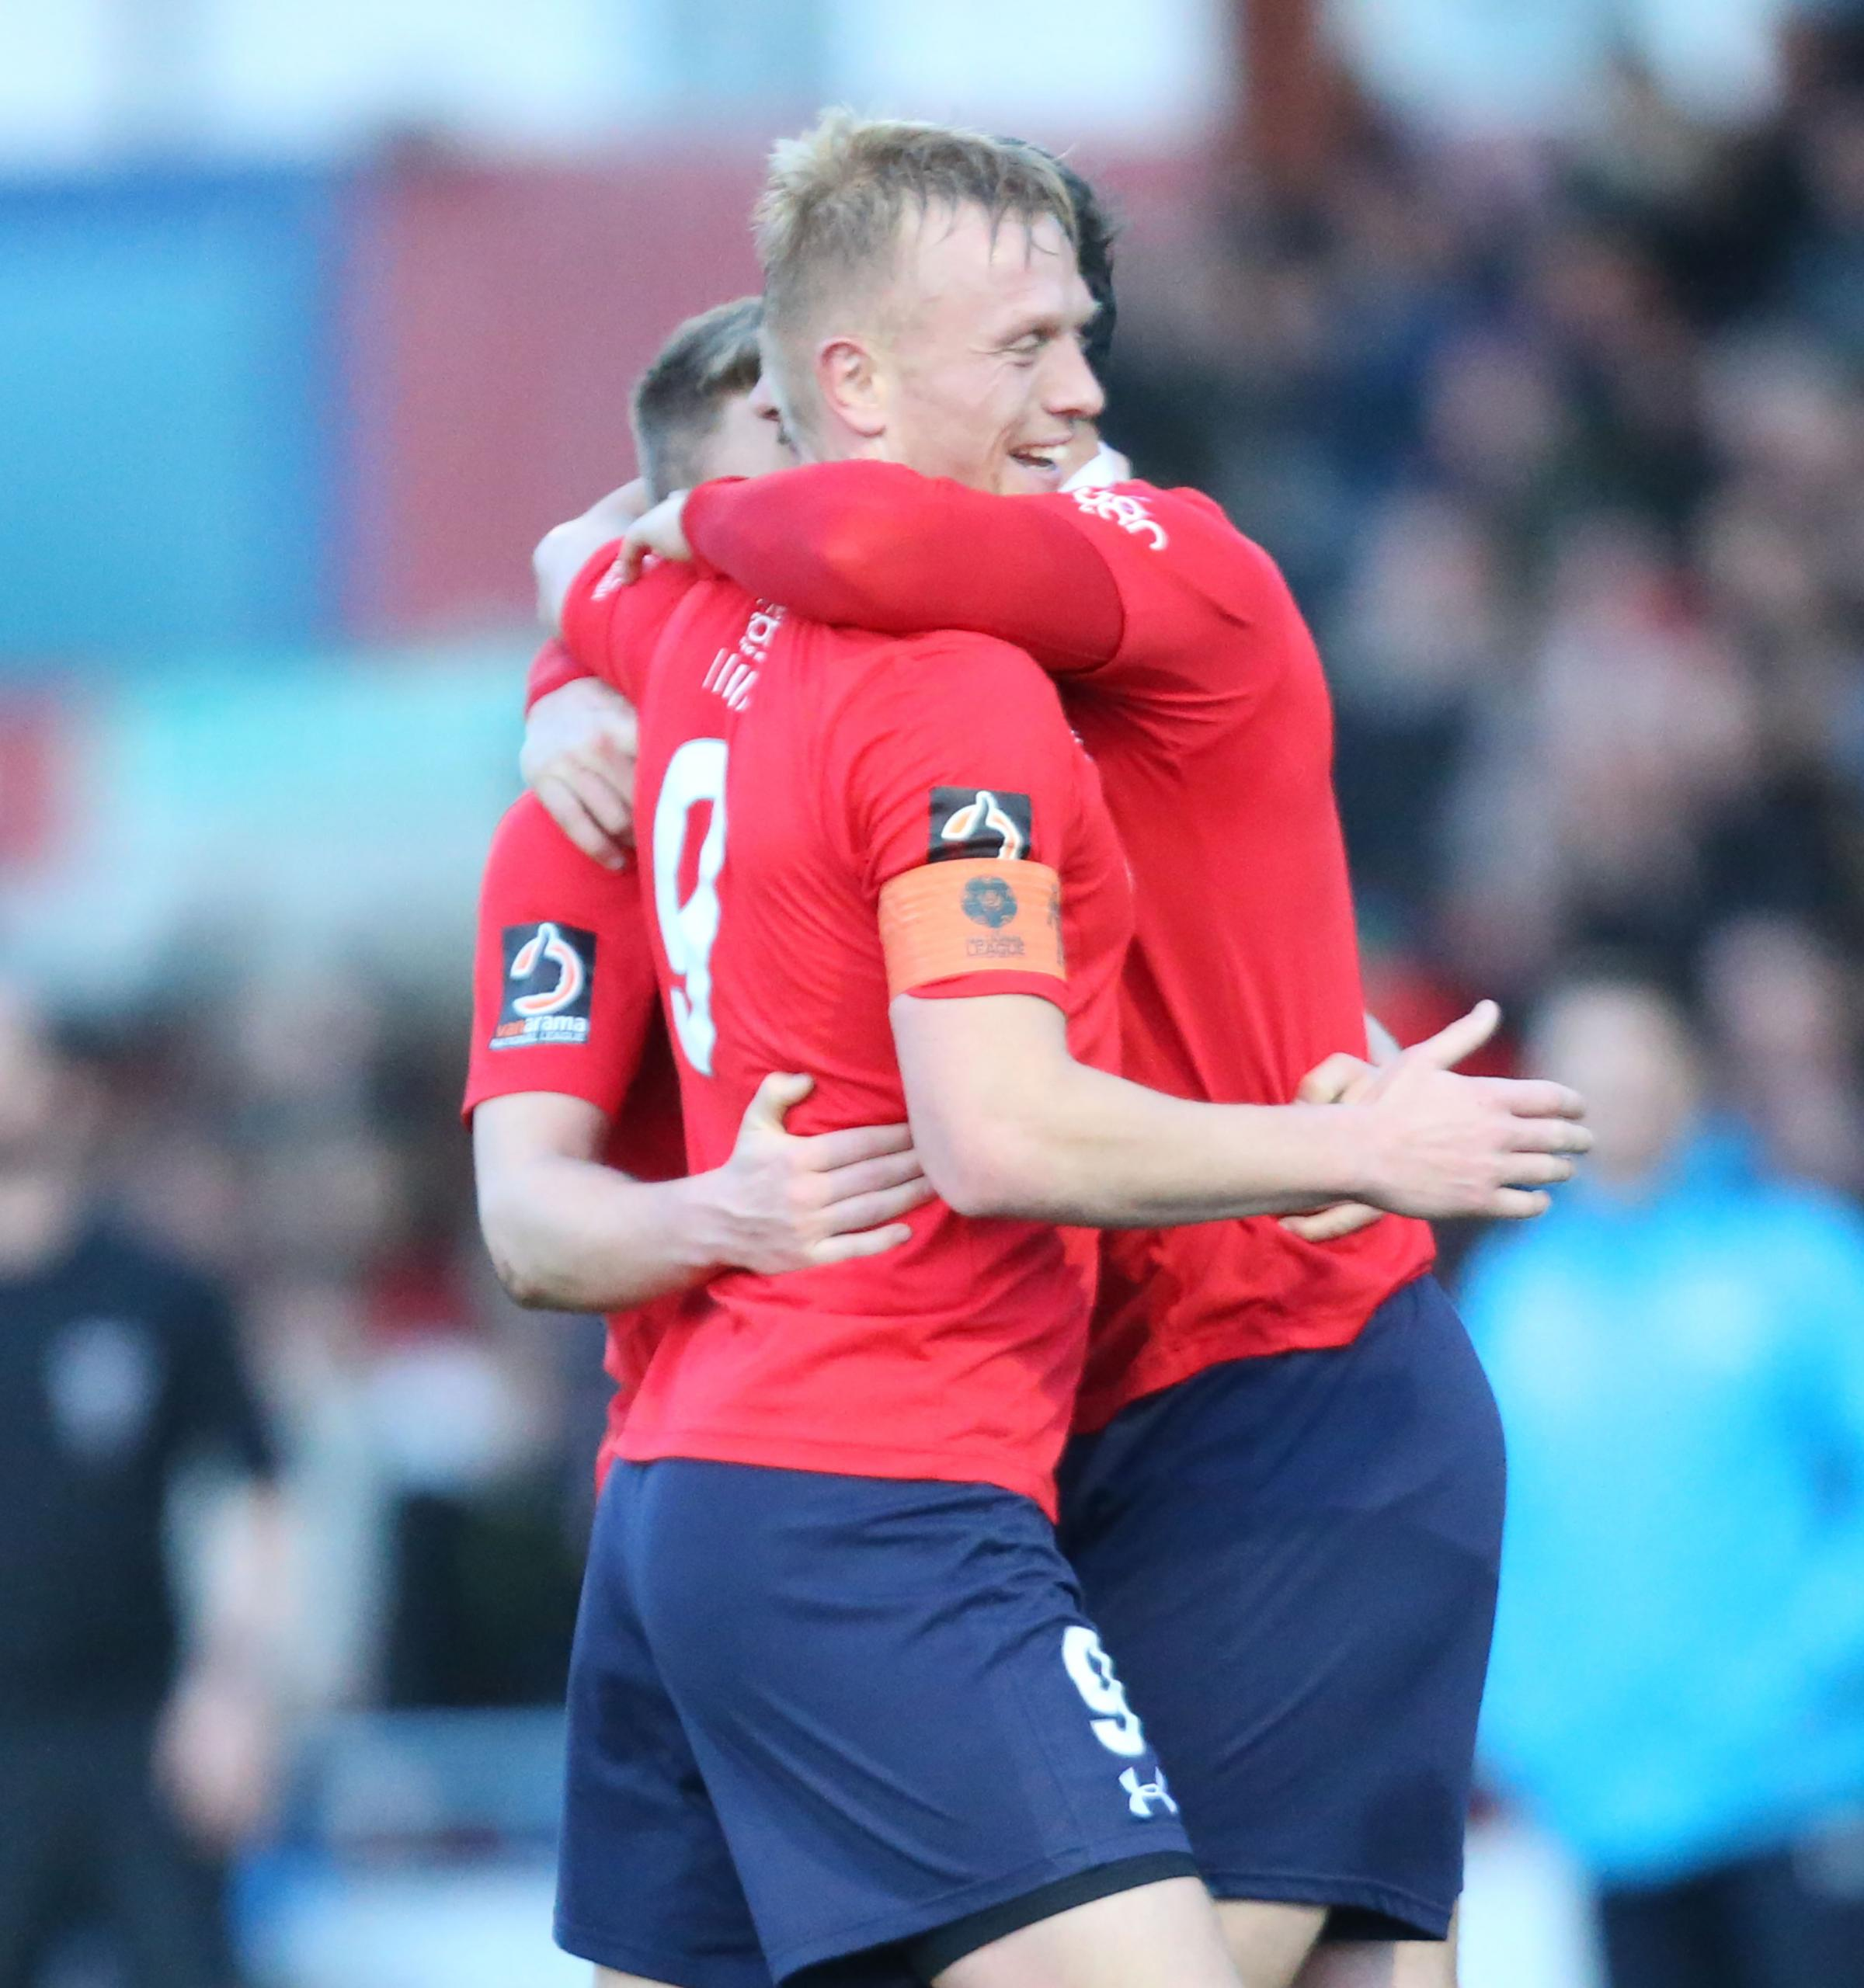 BRACING FINISH: Jordan Burrow is congratulated on his second York City goal against Ashton United. Picture: Gordon Clayton